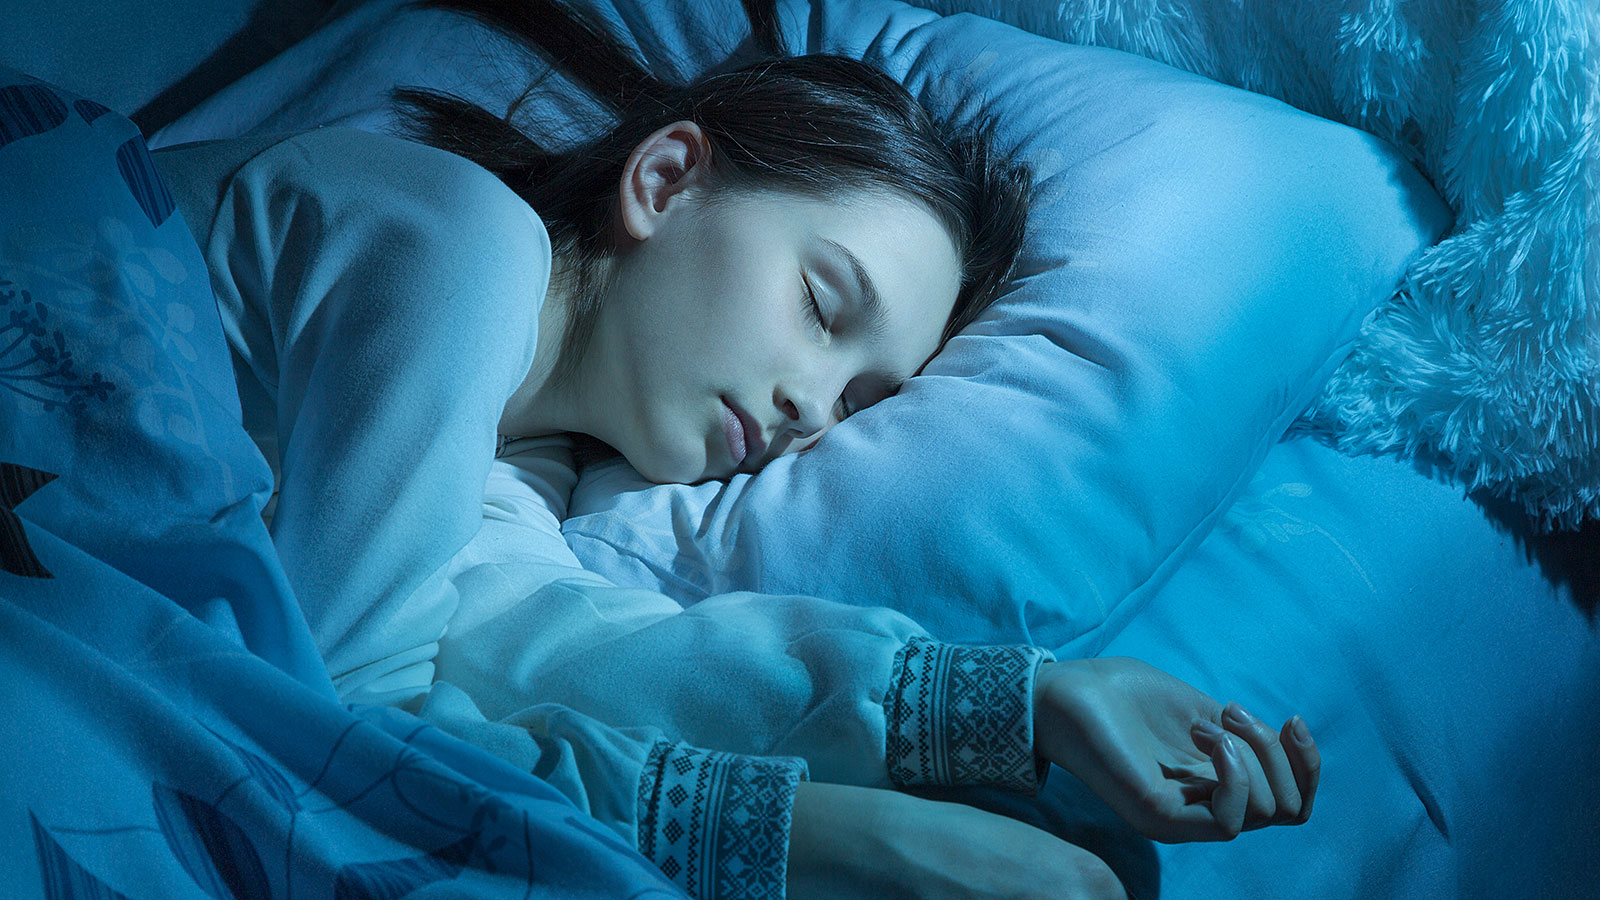 1 in 3 teenagers do this unhealthy thing in the middle of the night